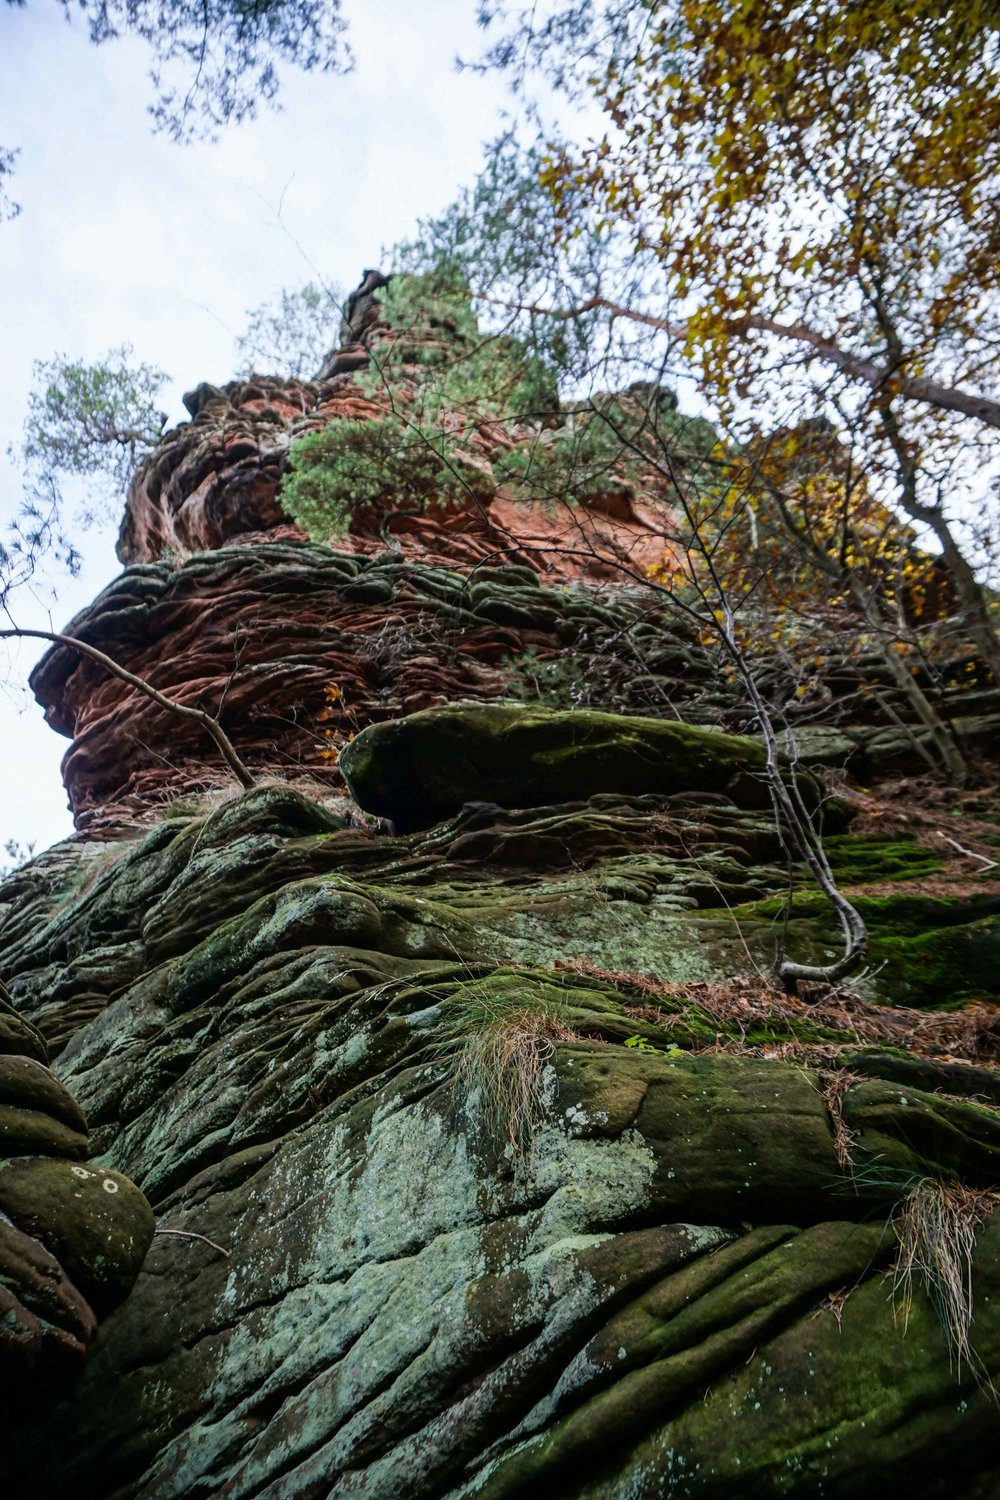 Fun rock formations